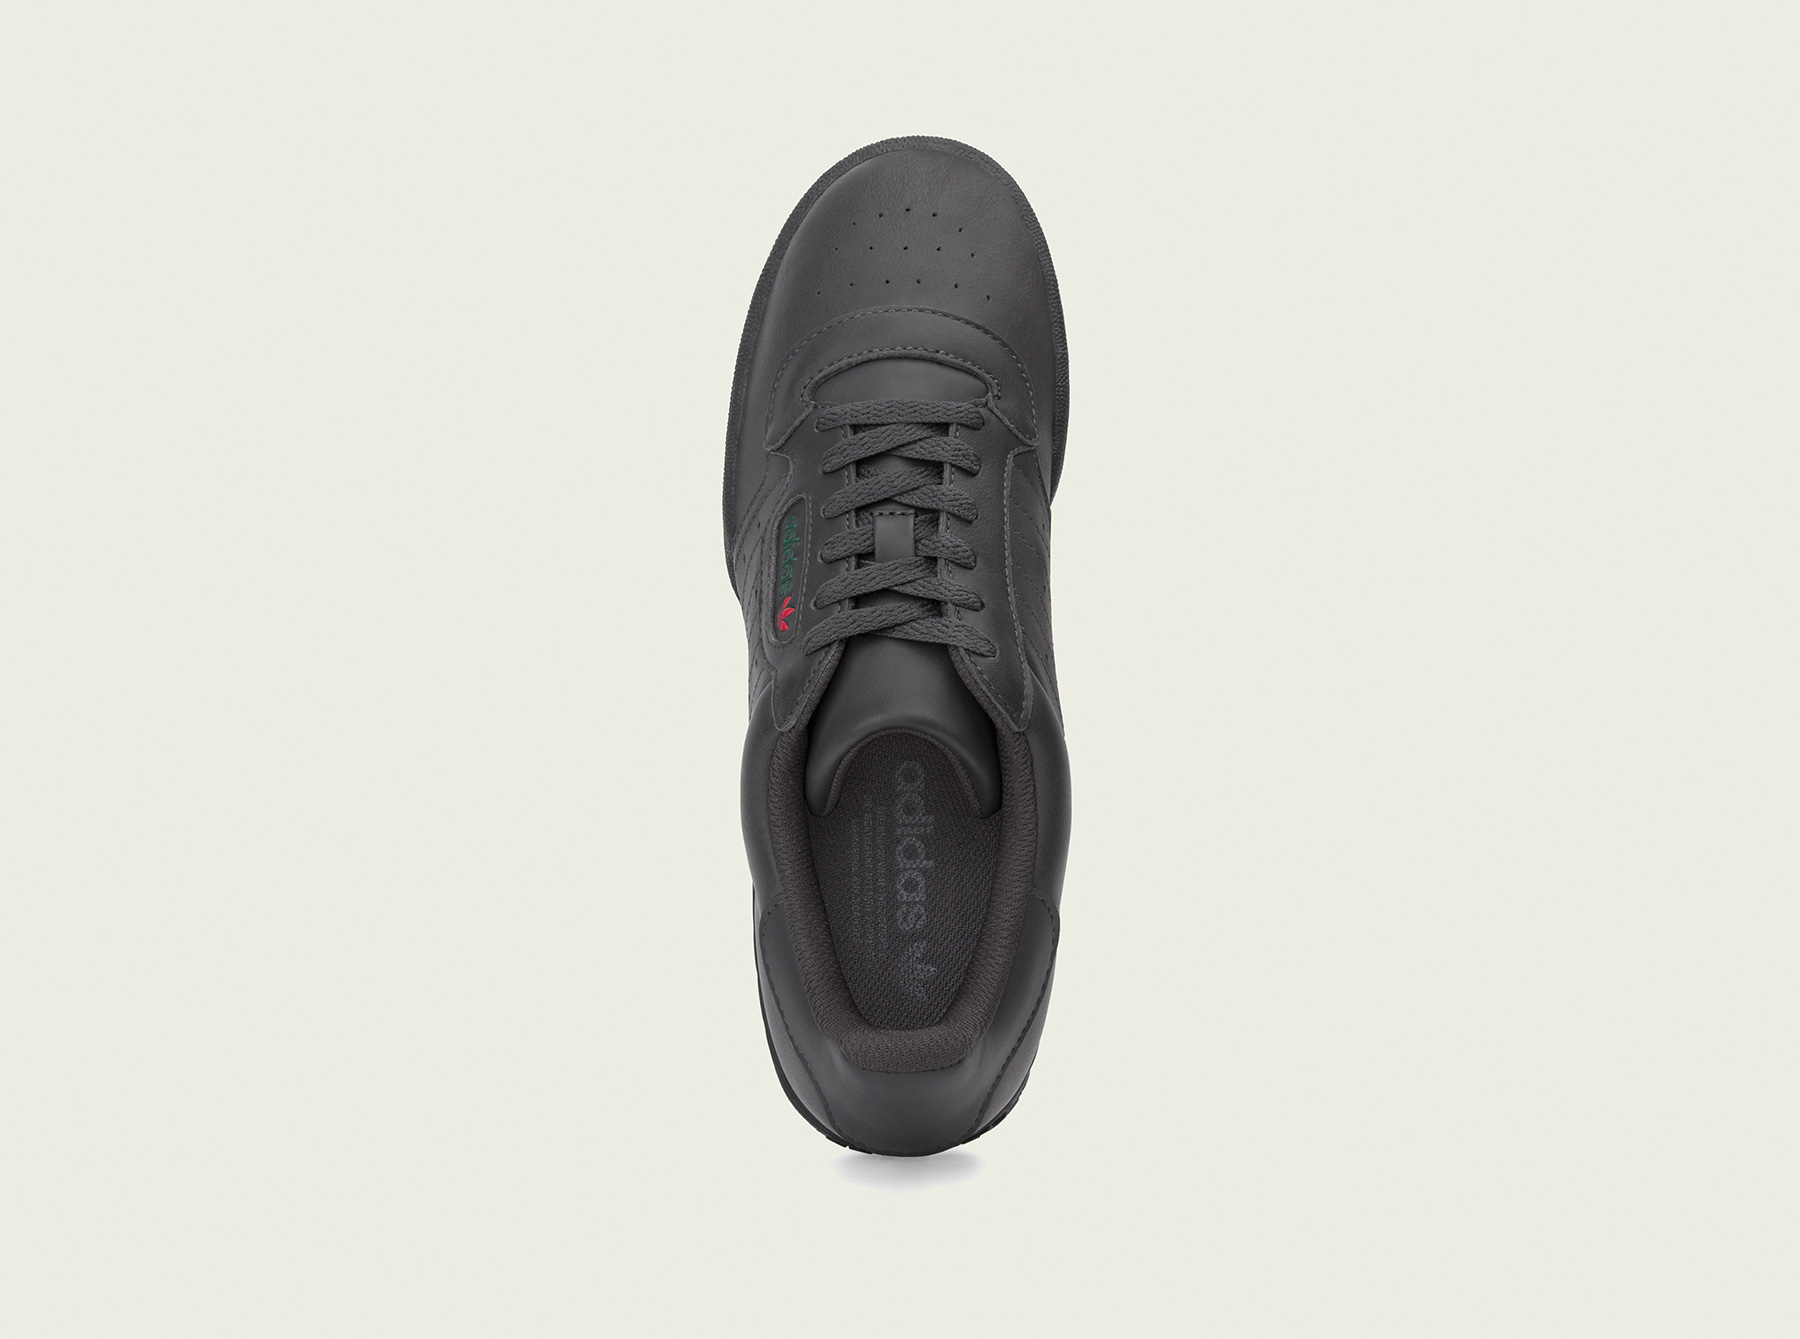 CG6420 adidas YEEZY POWERPHASE Black 1